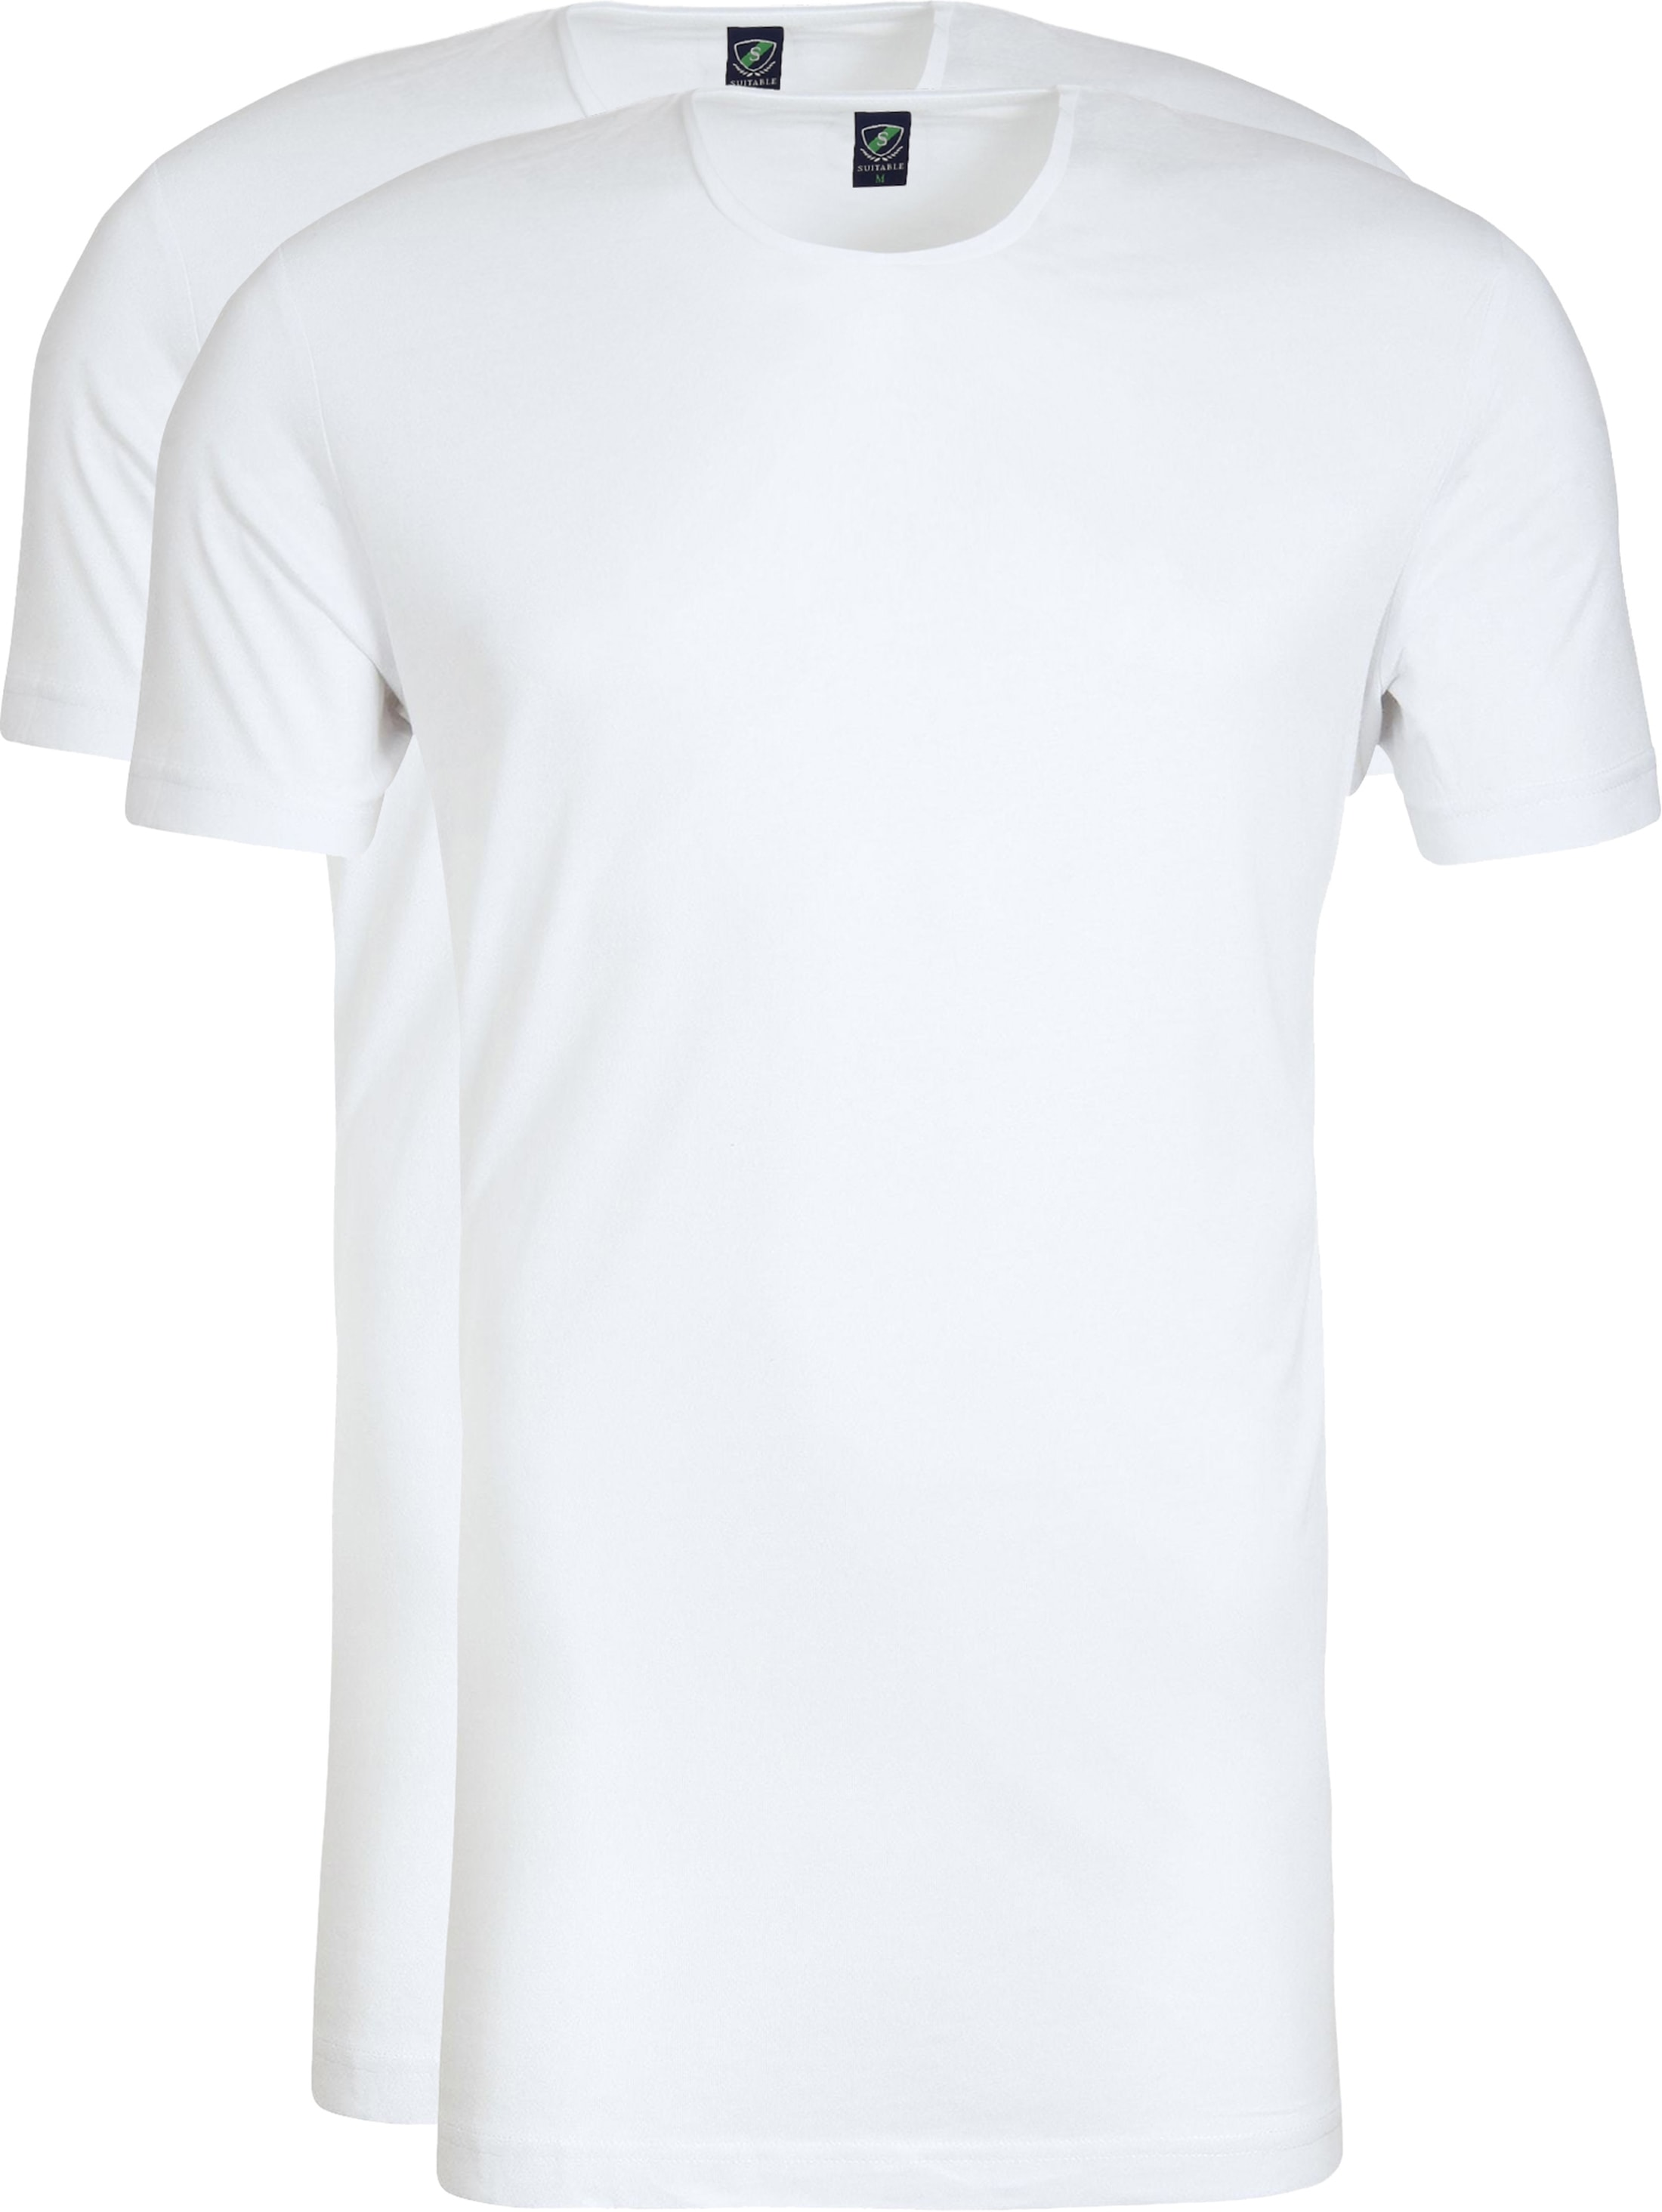 O-Neck 2-Pack Bamboo T-shirts